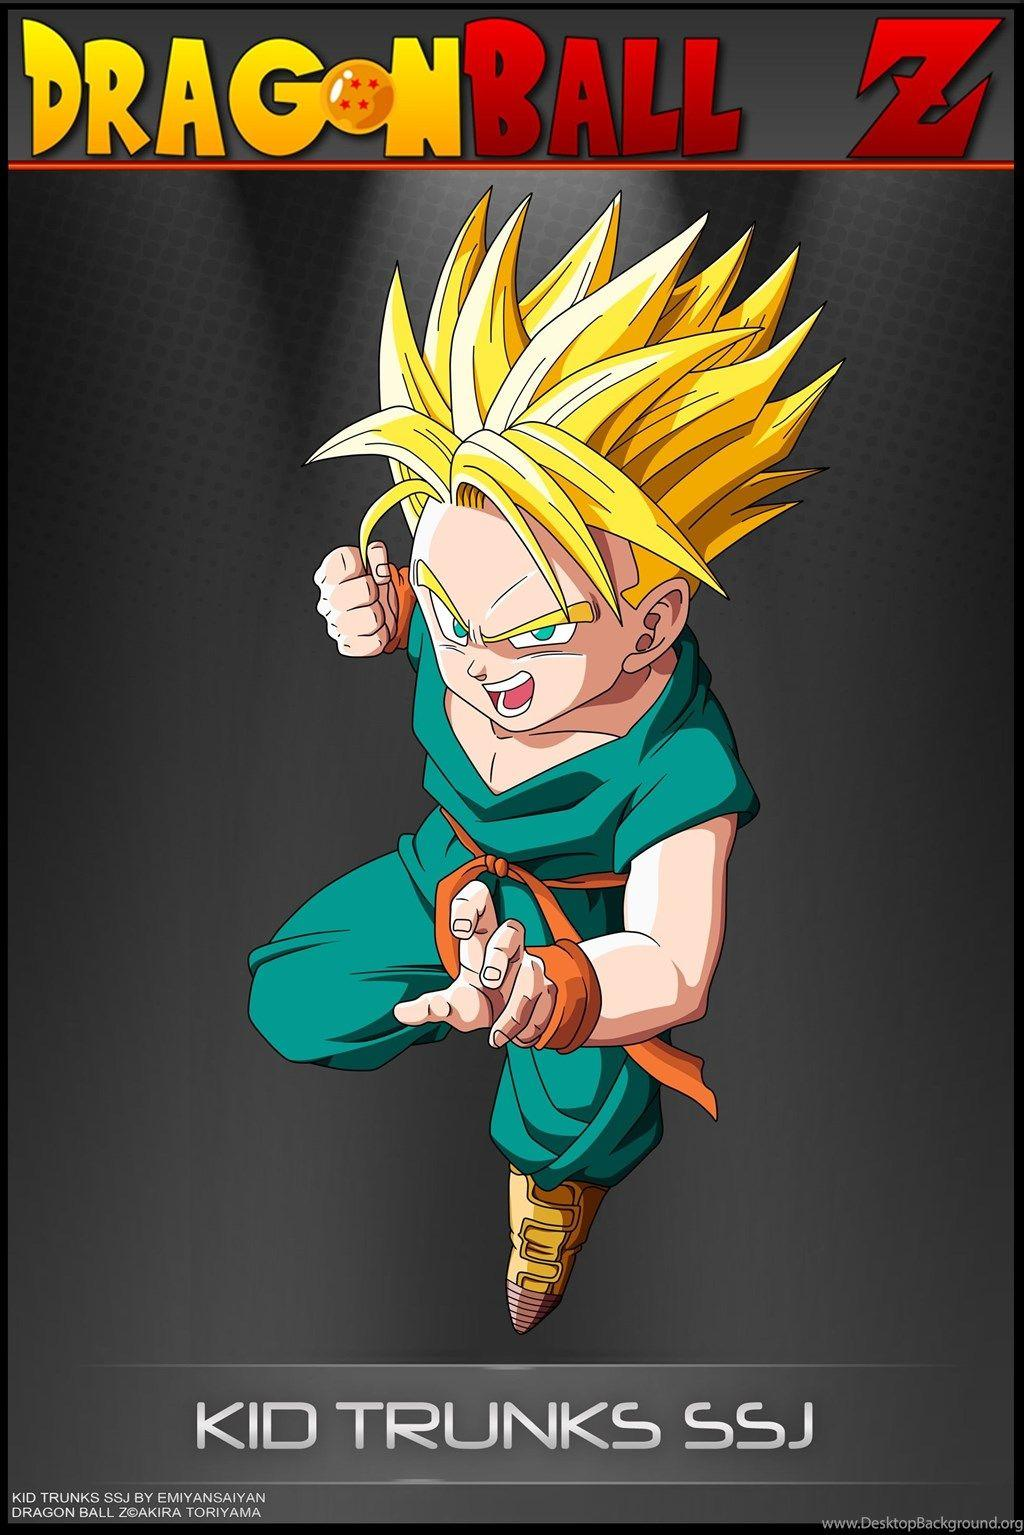 Wallpapers De Trunks Taringa! Desktop Backgrounds